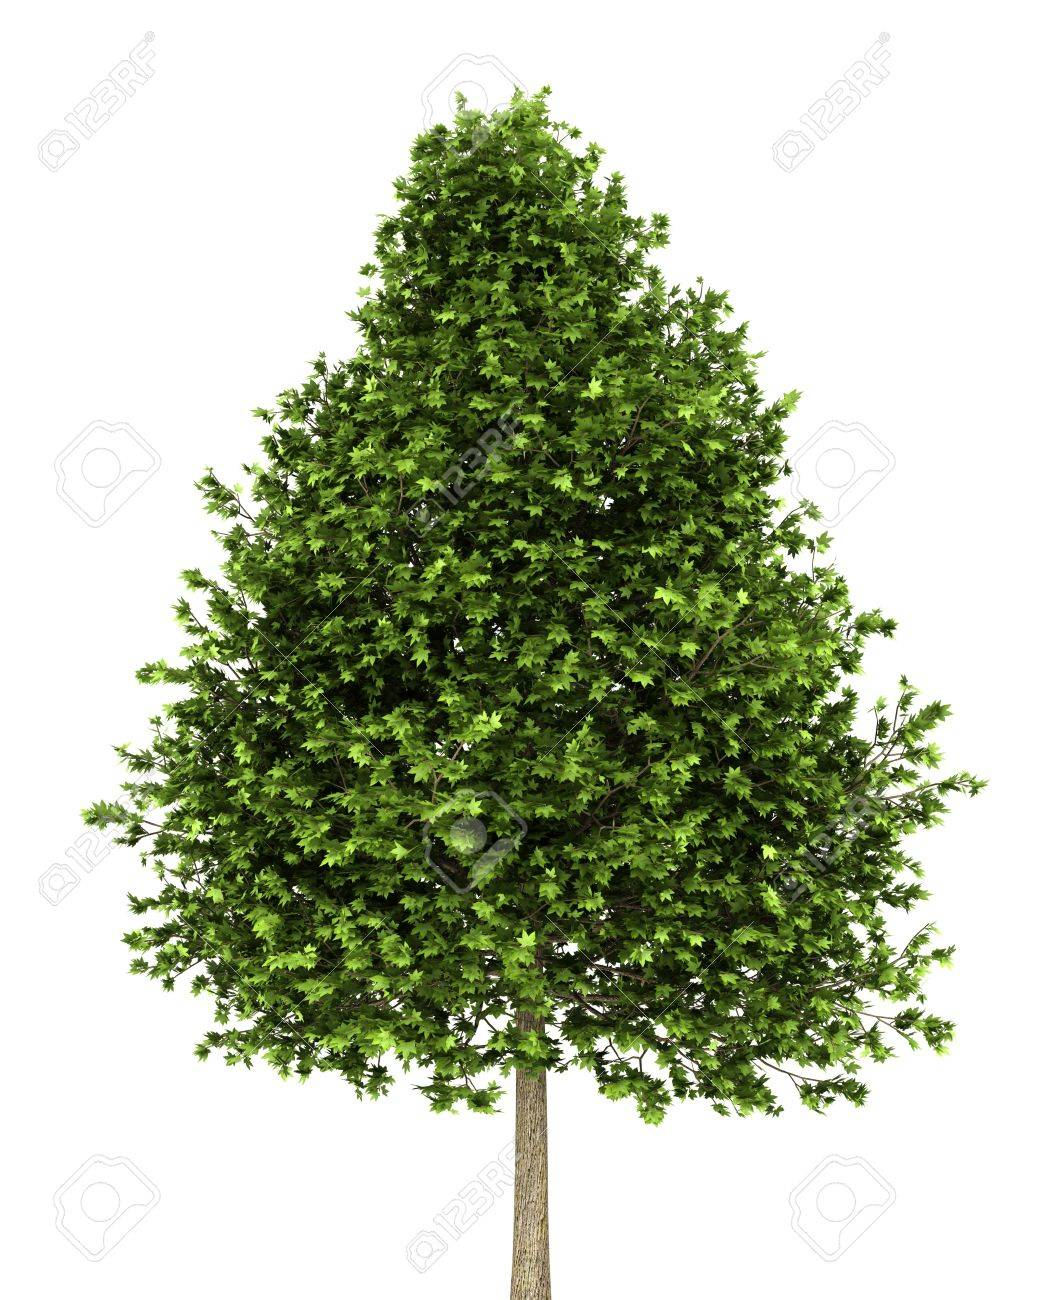 Green American Sweetgum Tree Isolated On White Background Stock Photo Picture And Royalty Free Image Image 11925909